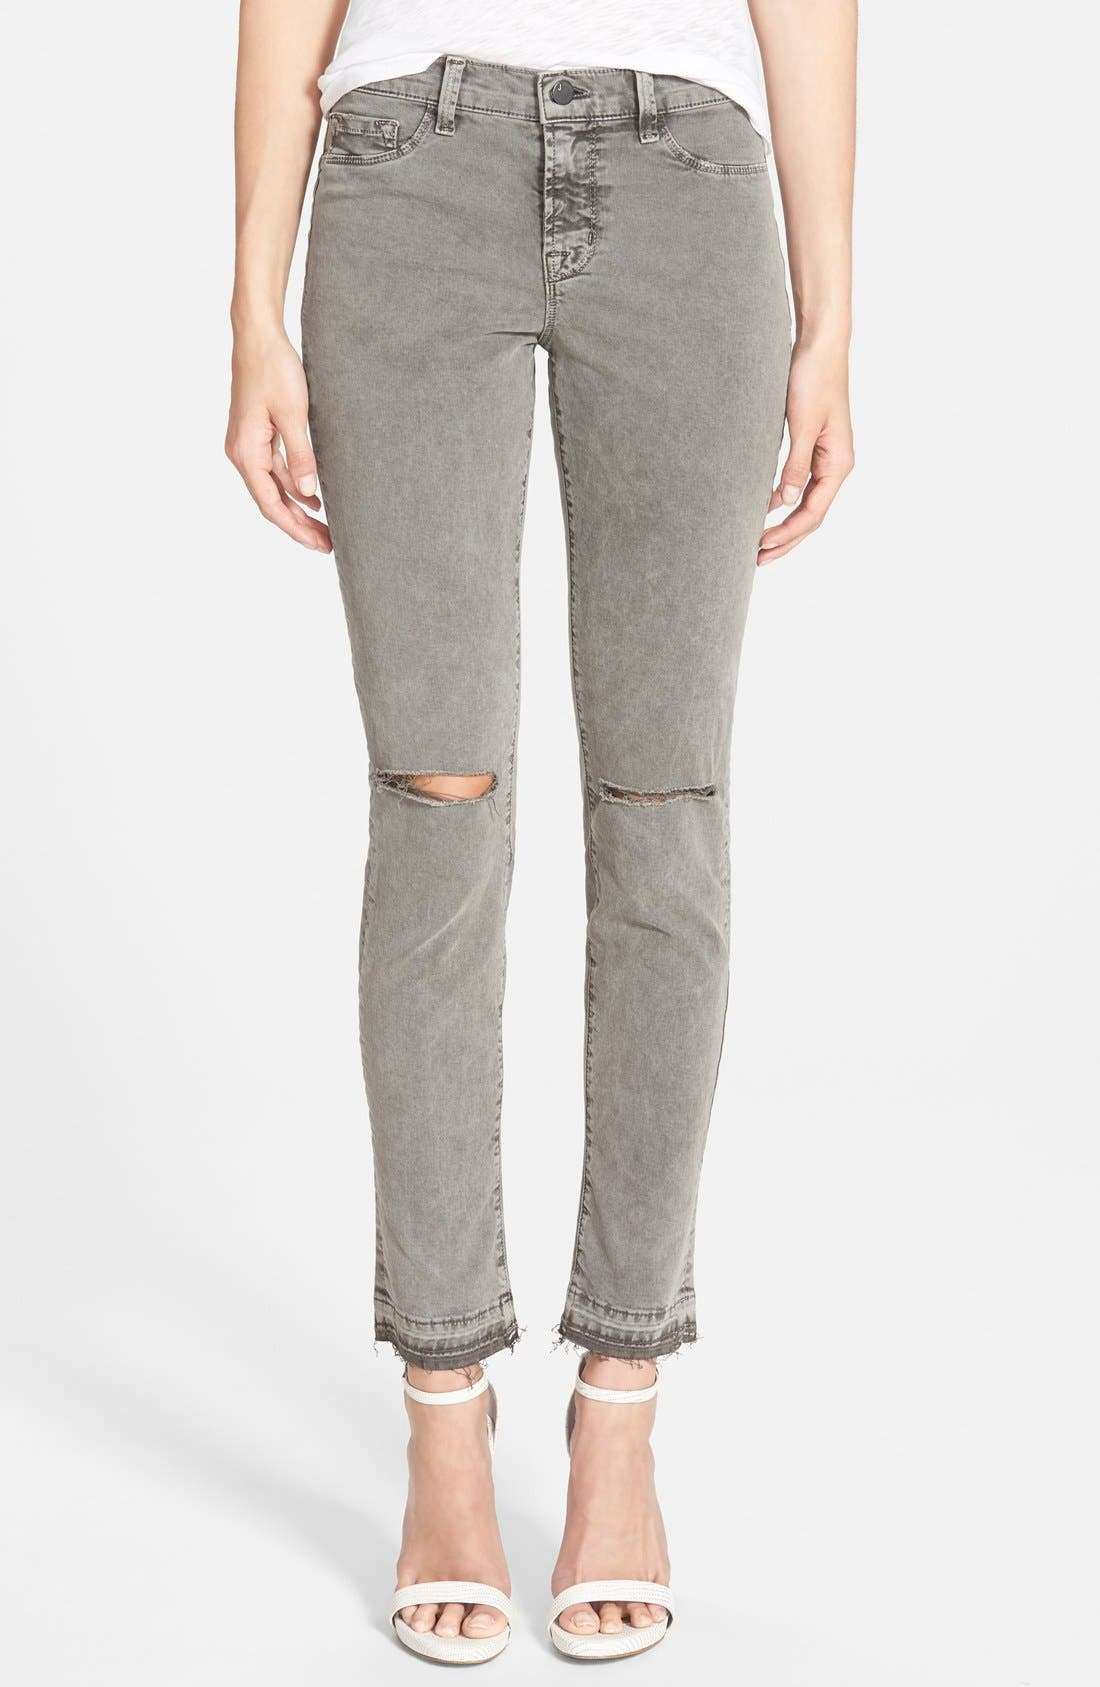 Alternate Image 1 Selected - J Brand Mid Rise Skinny Jeans